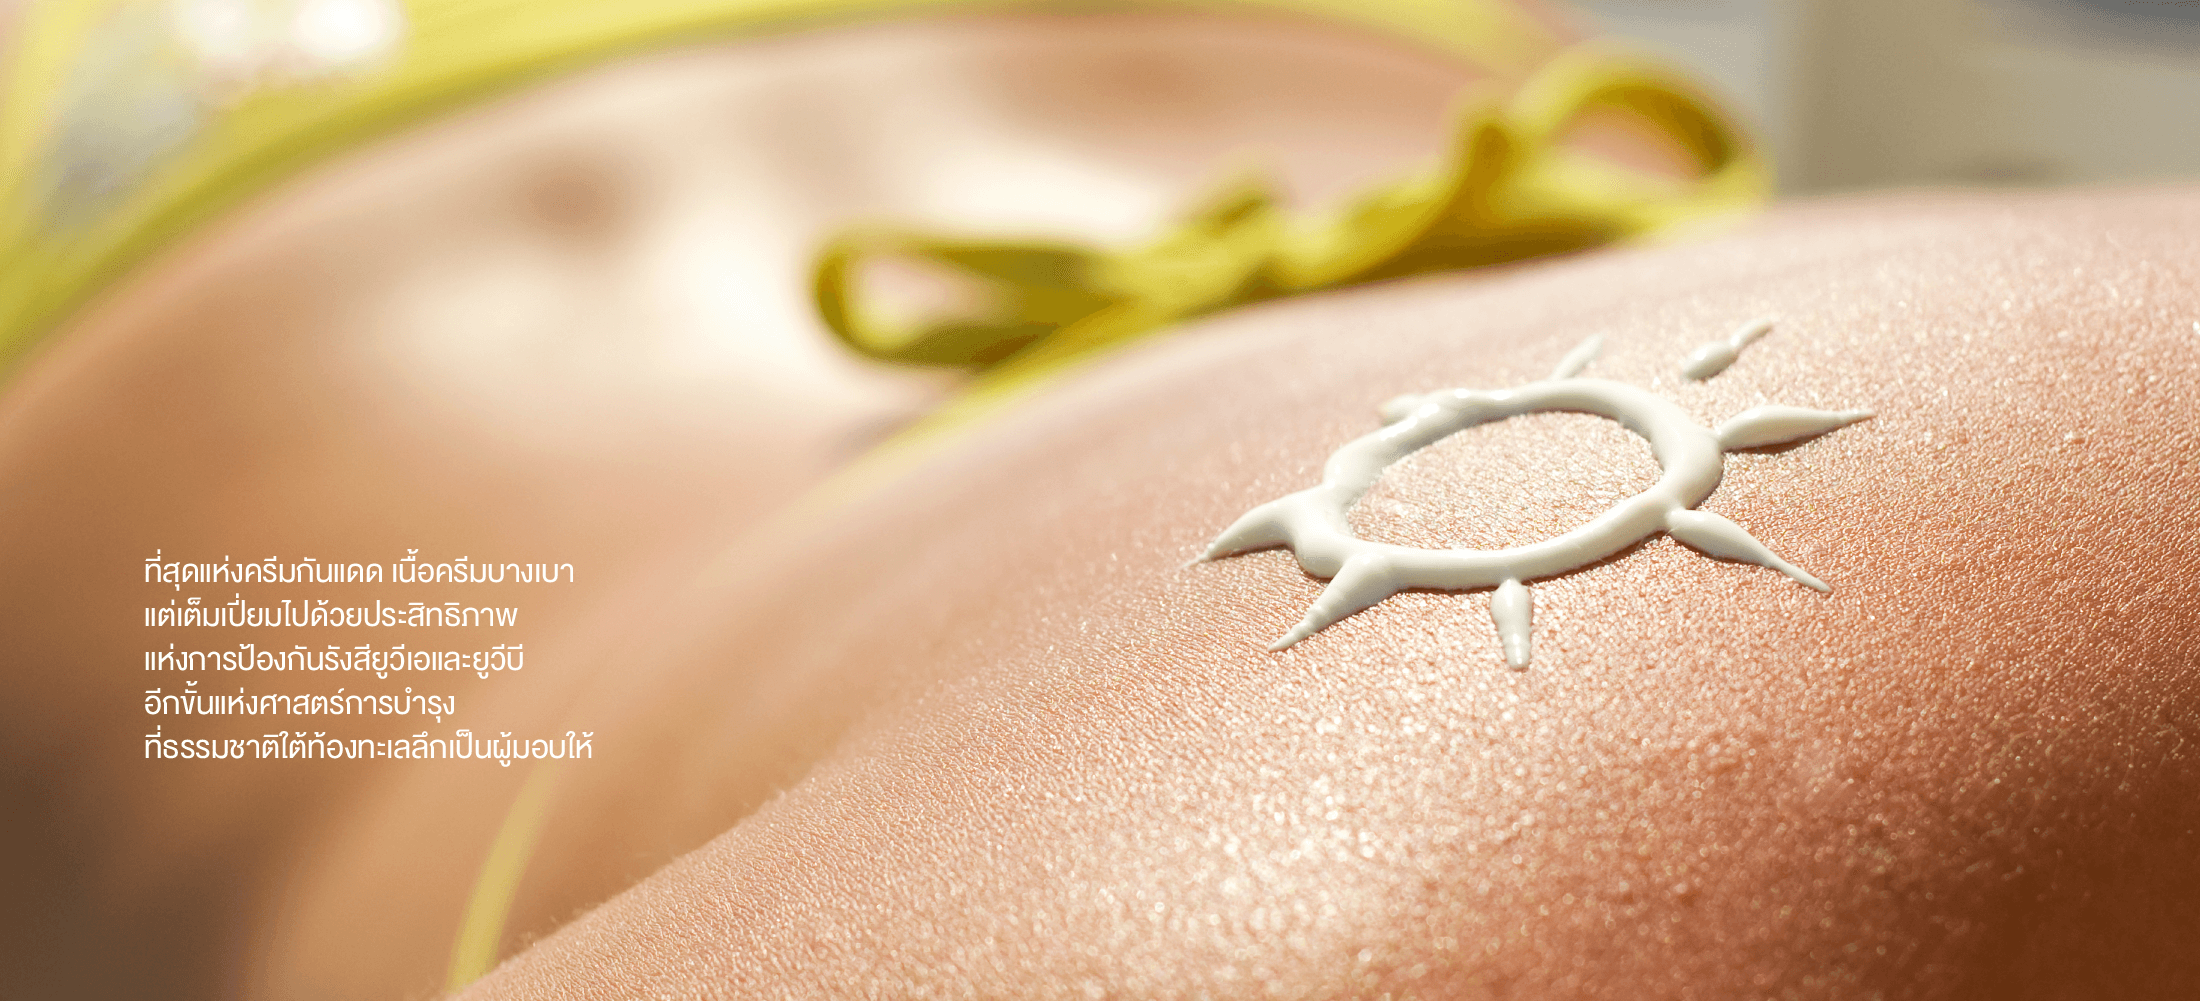 Ocean skin speedy sunscreen future protection